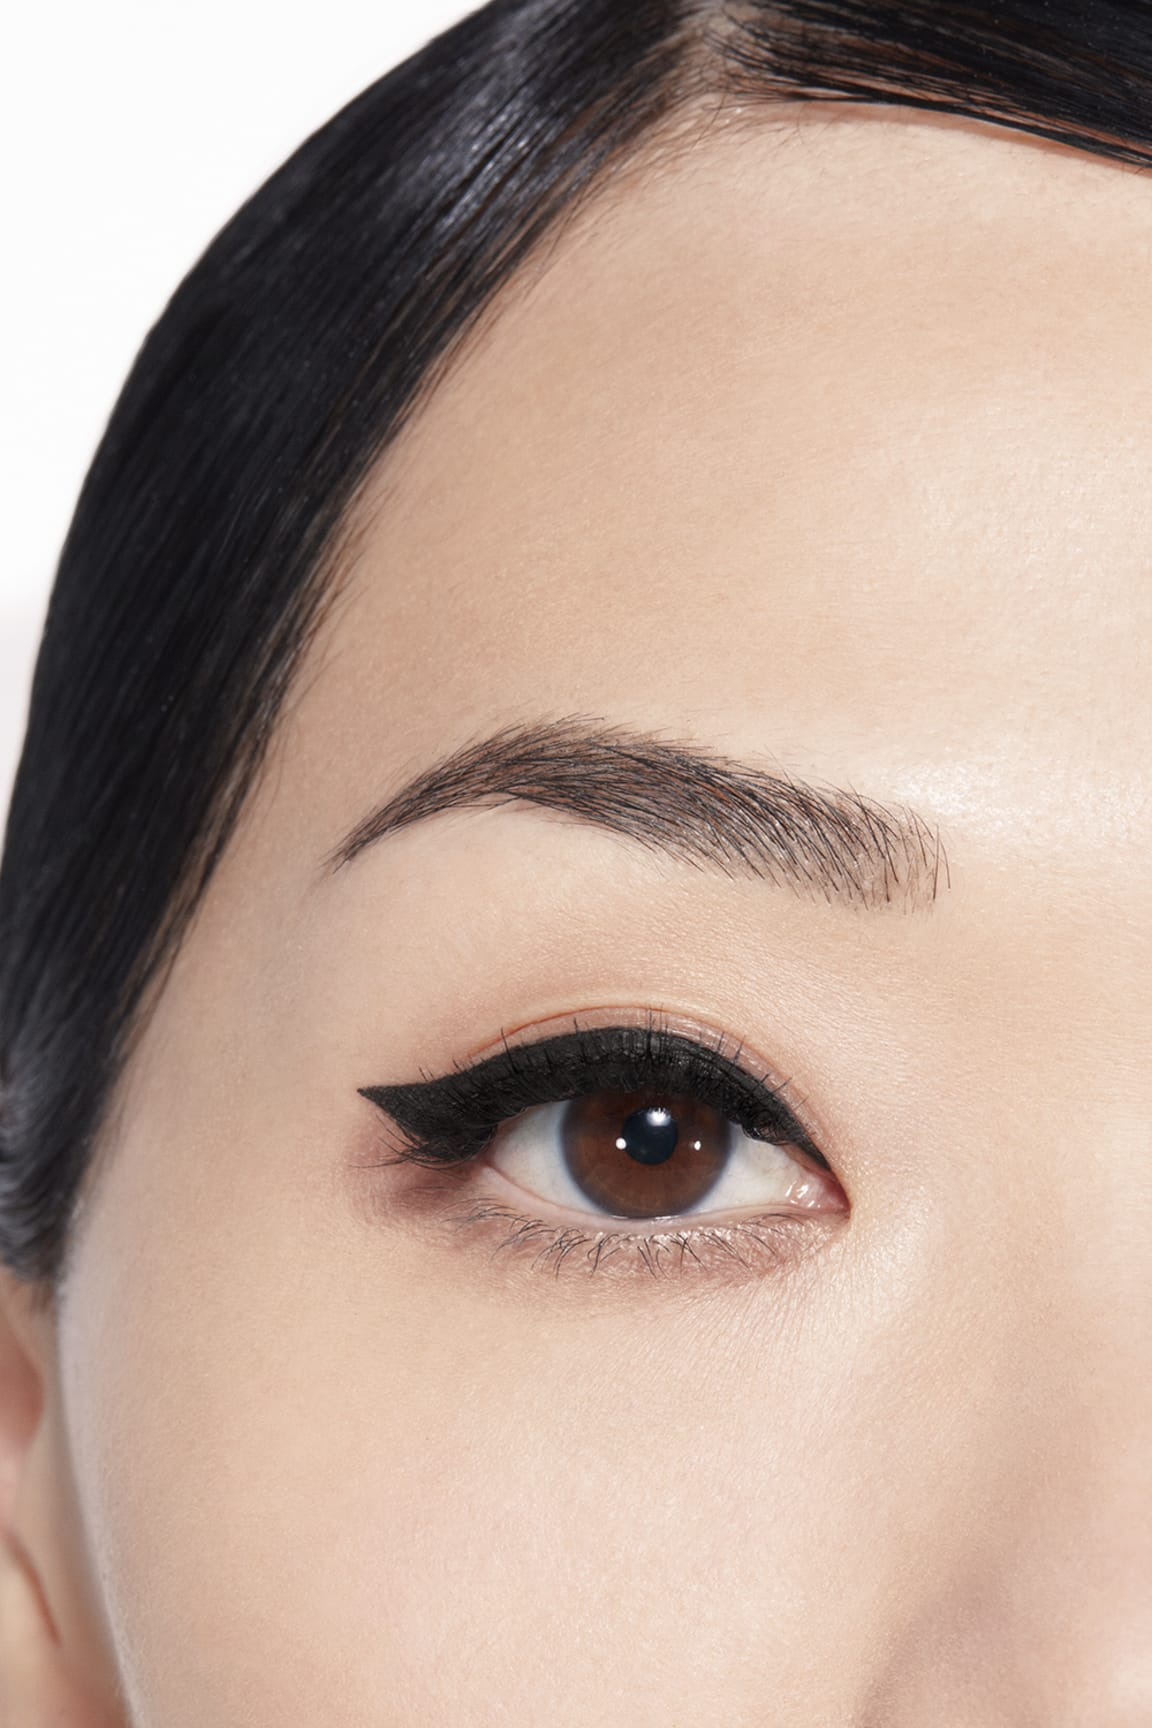 Application makeup visual 1 - LE LINER DE CHANEL 512 - NOIR PROFOND